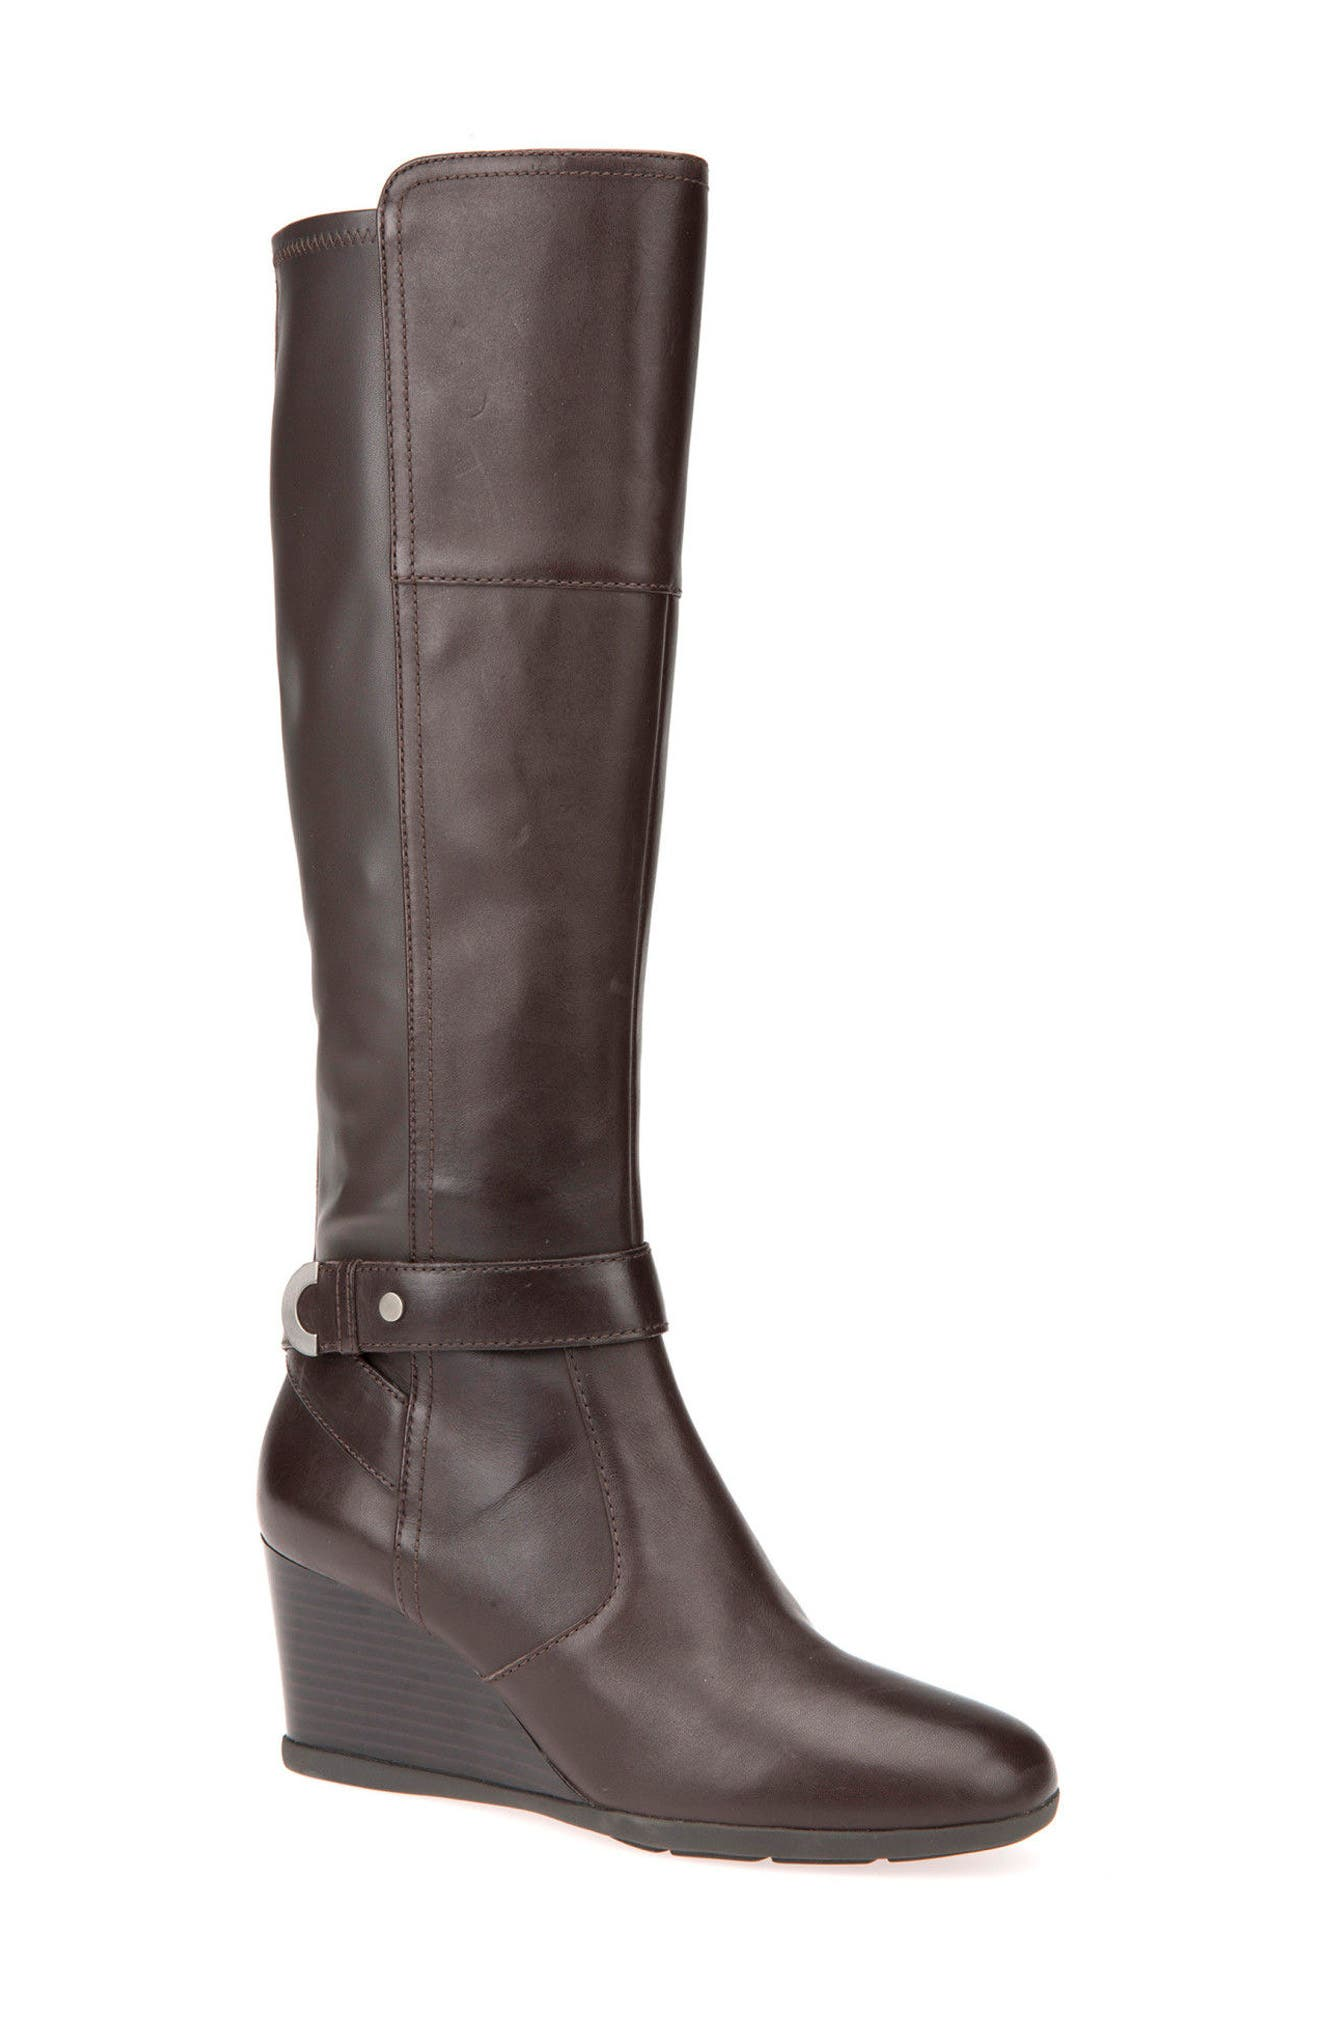 Geox Inspiration Knee High Wedge Boot - Brown